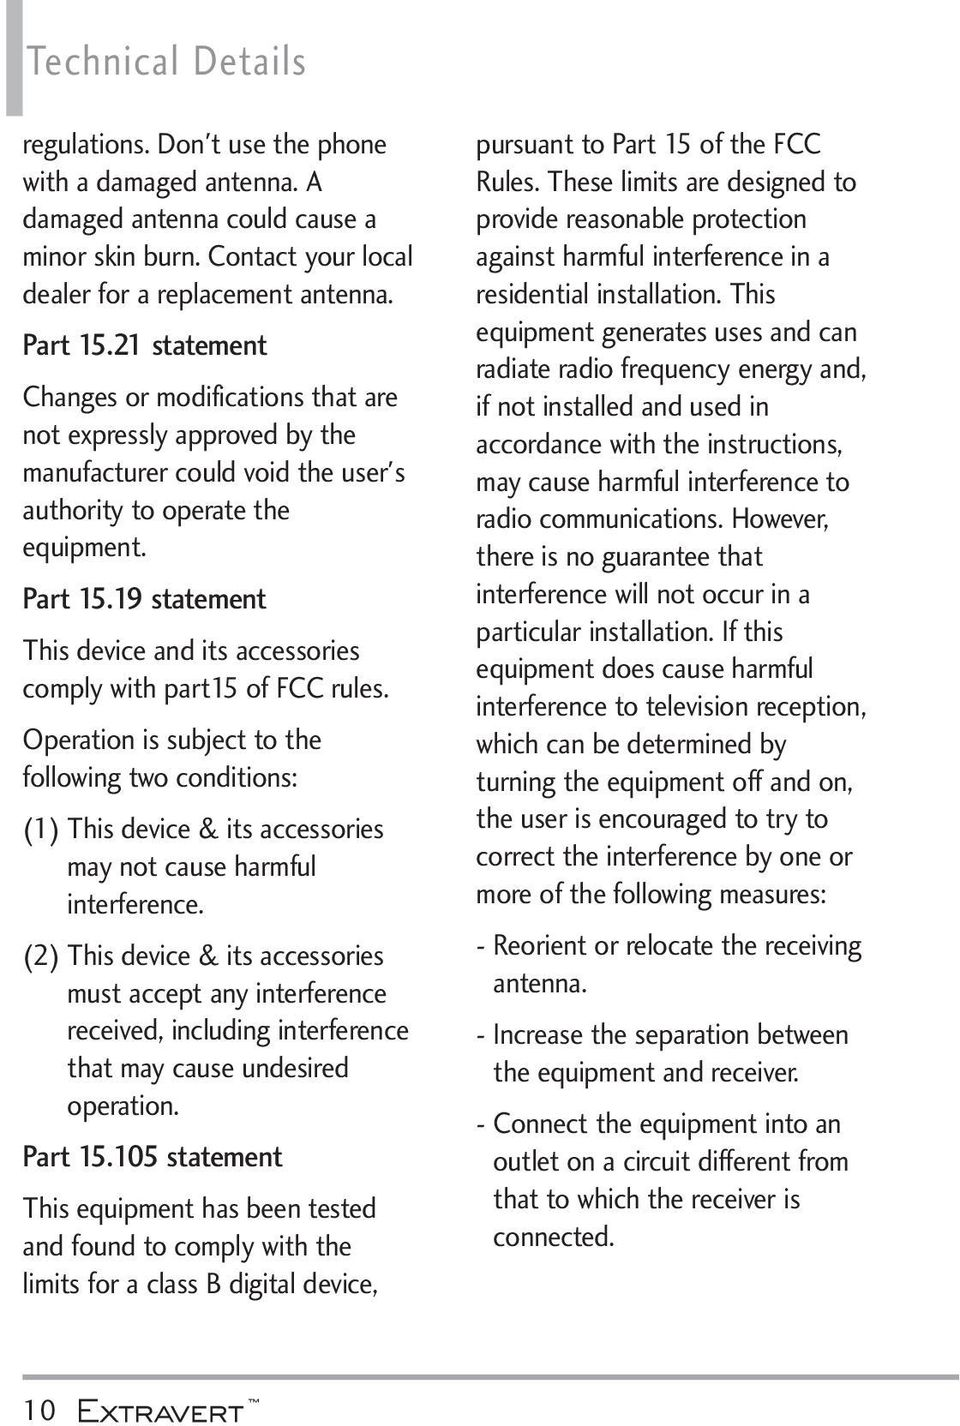 19 statement This device and its accessories comply with part15 of FCC rules.